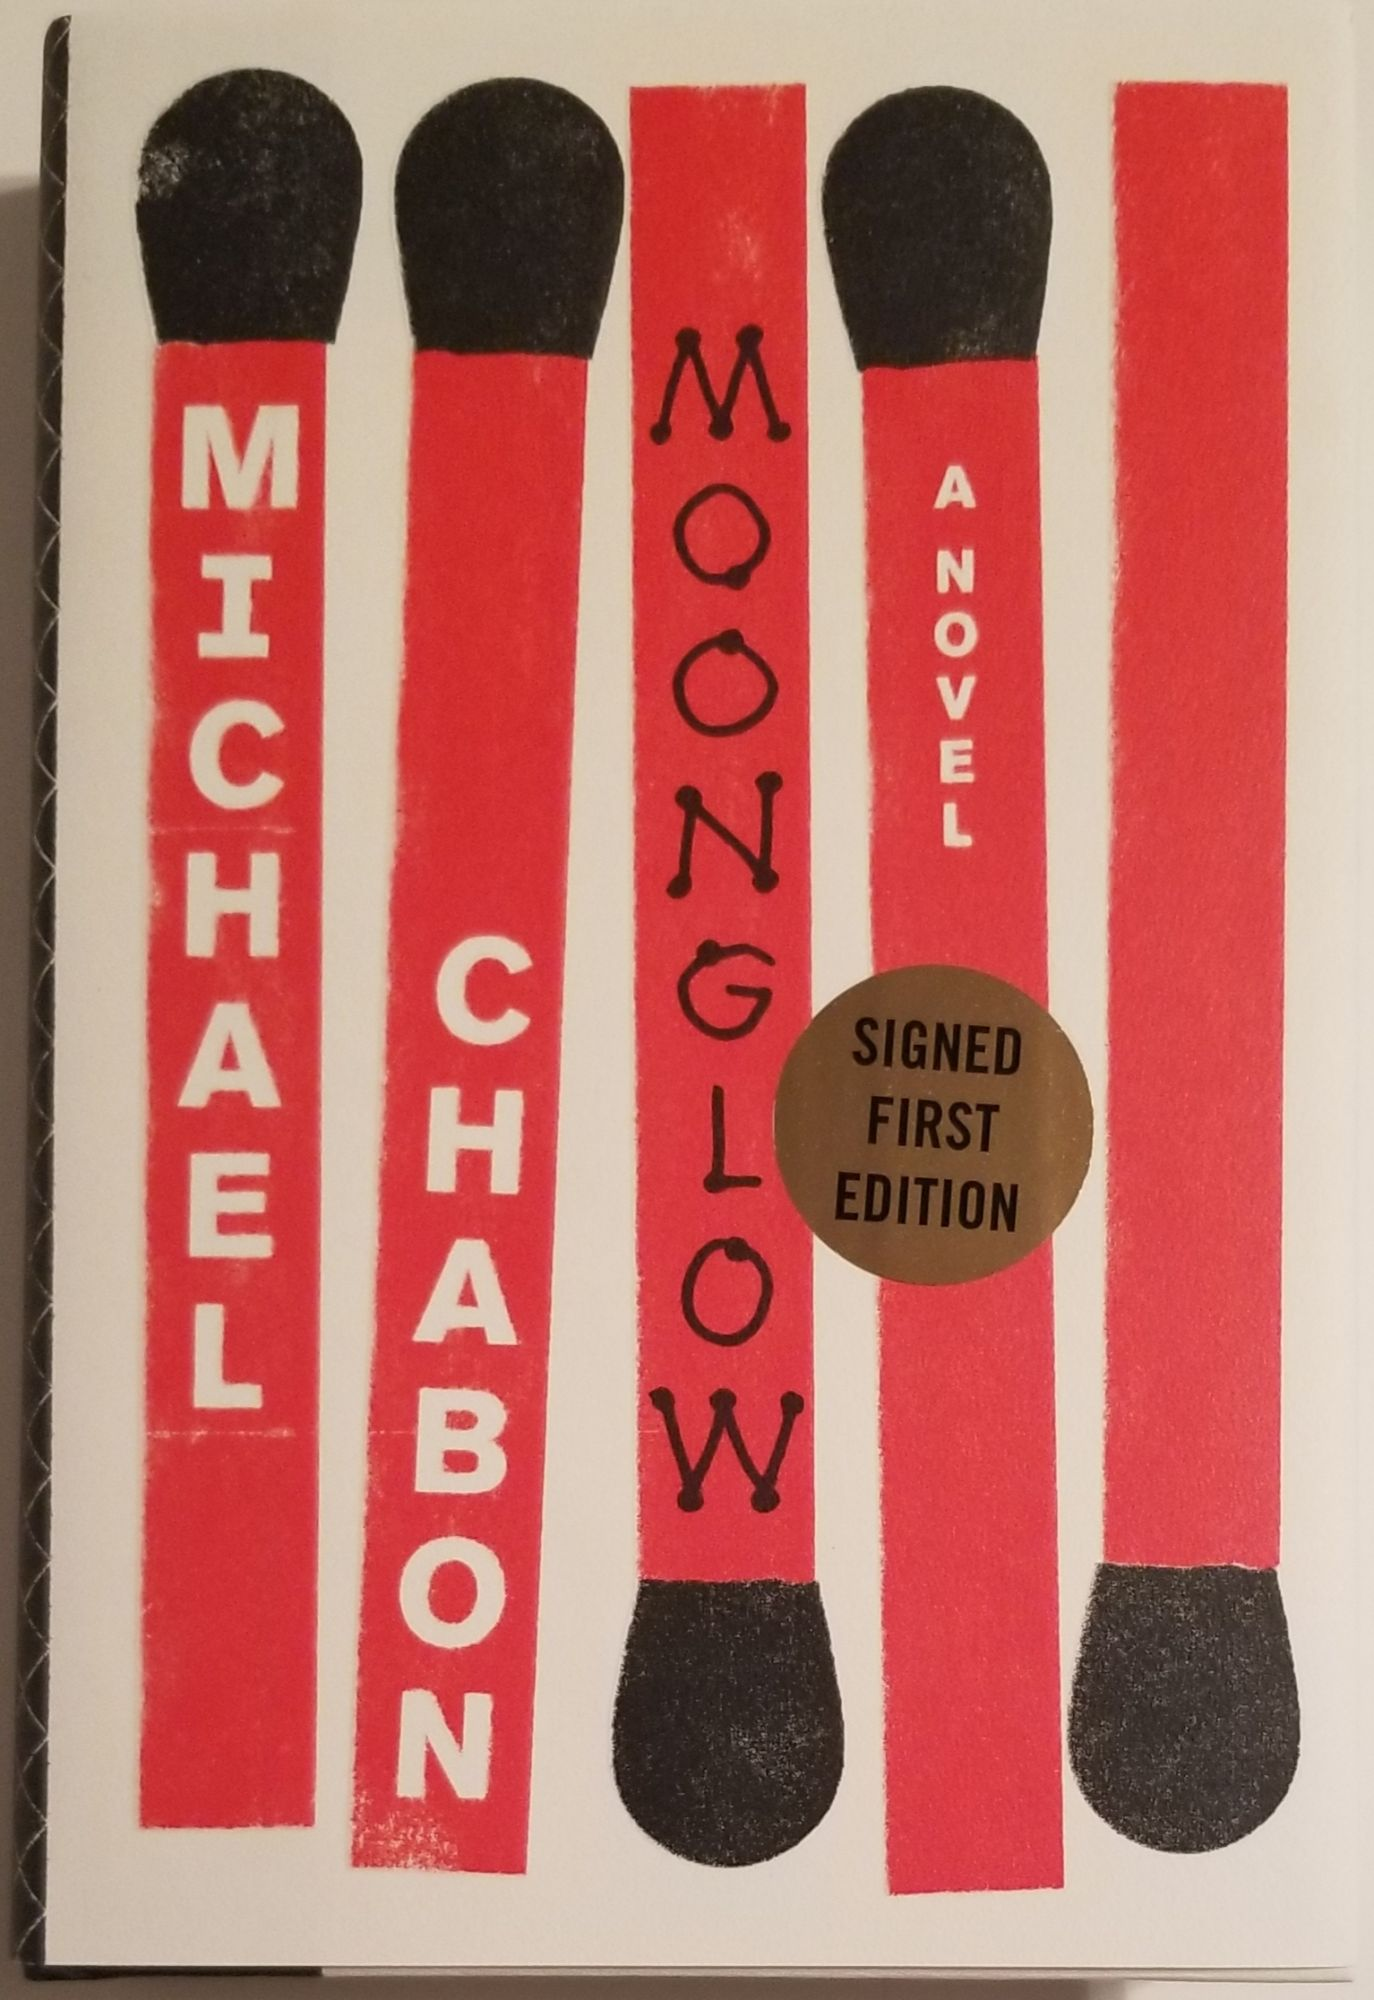 MOONGLOW. Michael Chabon.